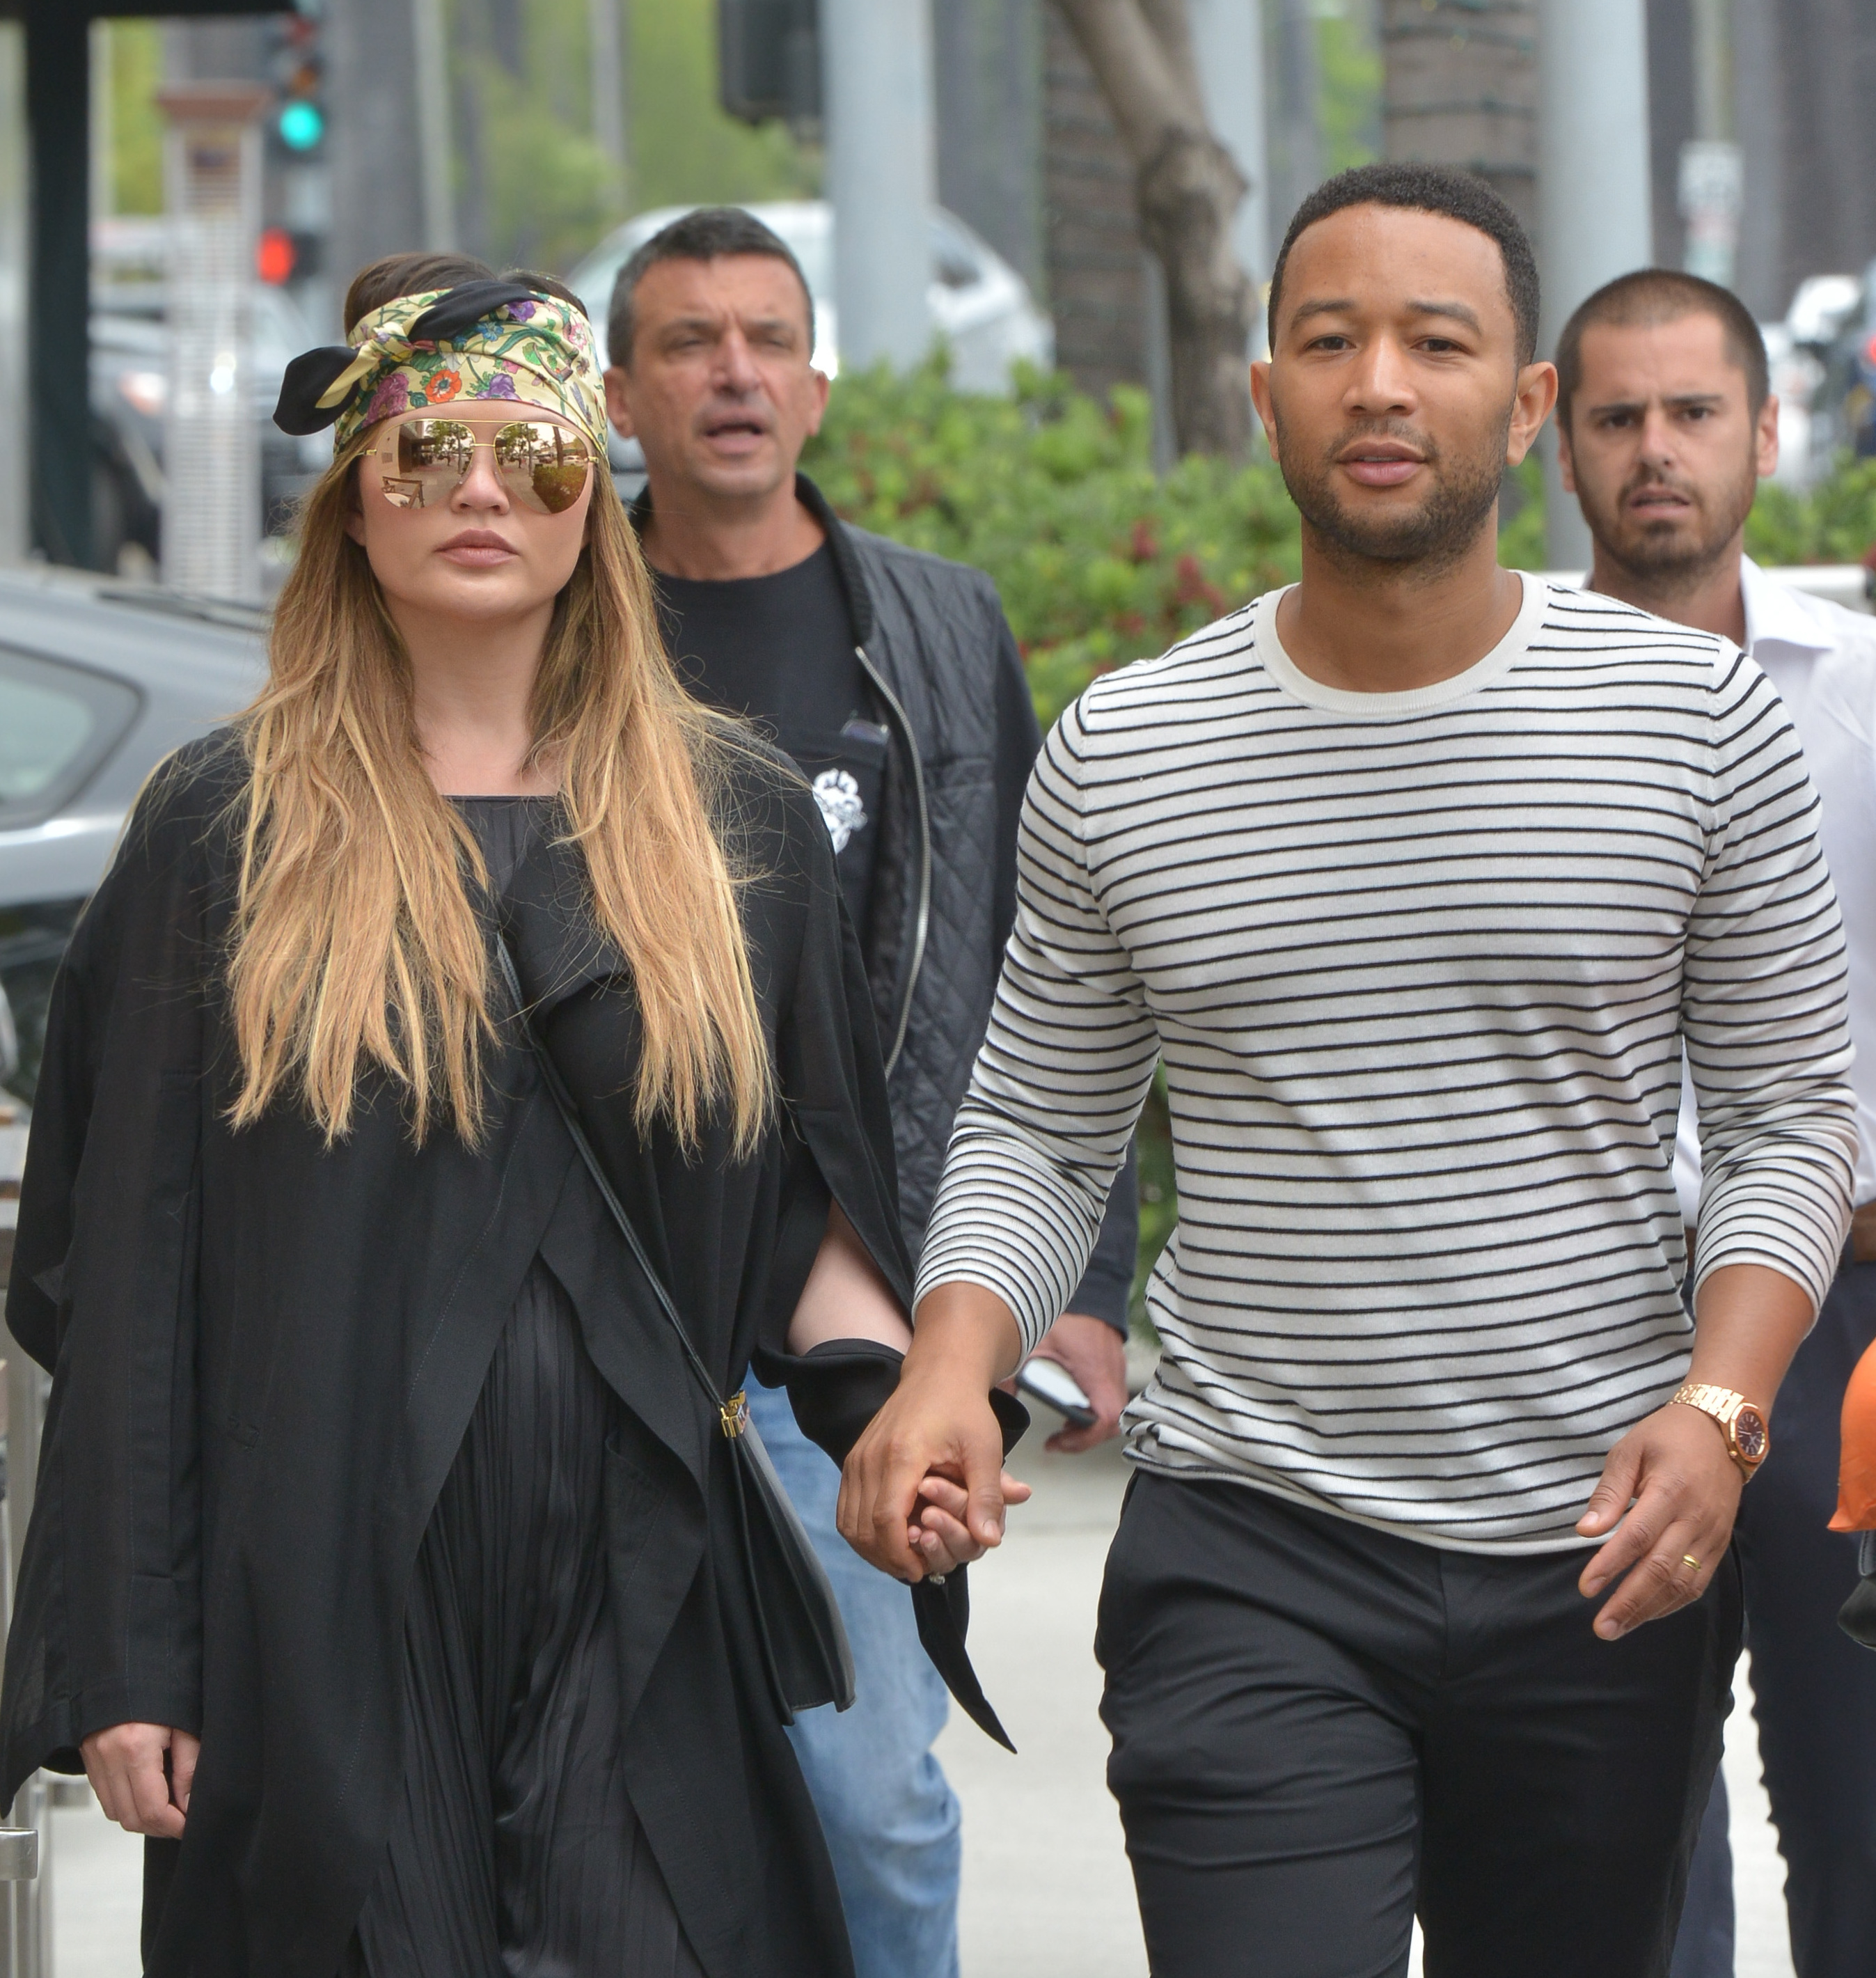 Chrissy Teigen Recalls Being Followed And Harassed By Bigots During Virginia Car Ride With John Legend